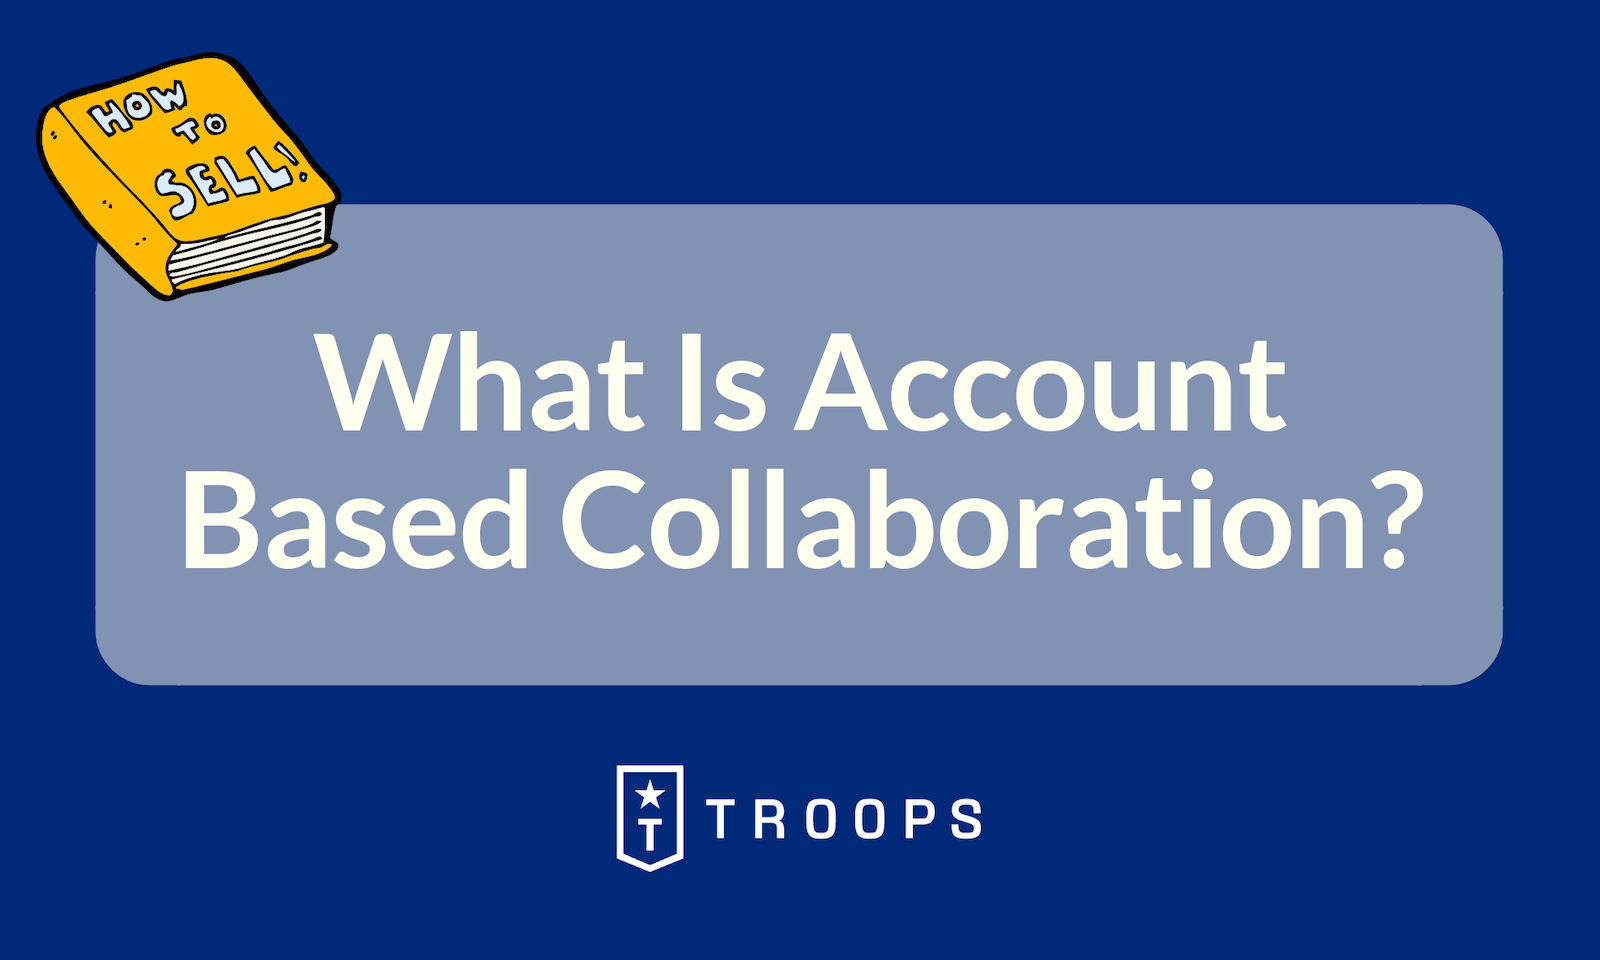 What Is Account Based Collaboration?